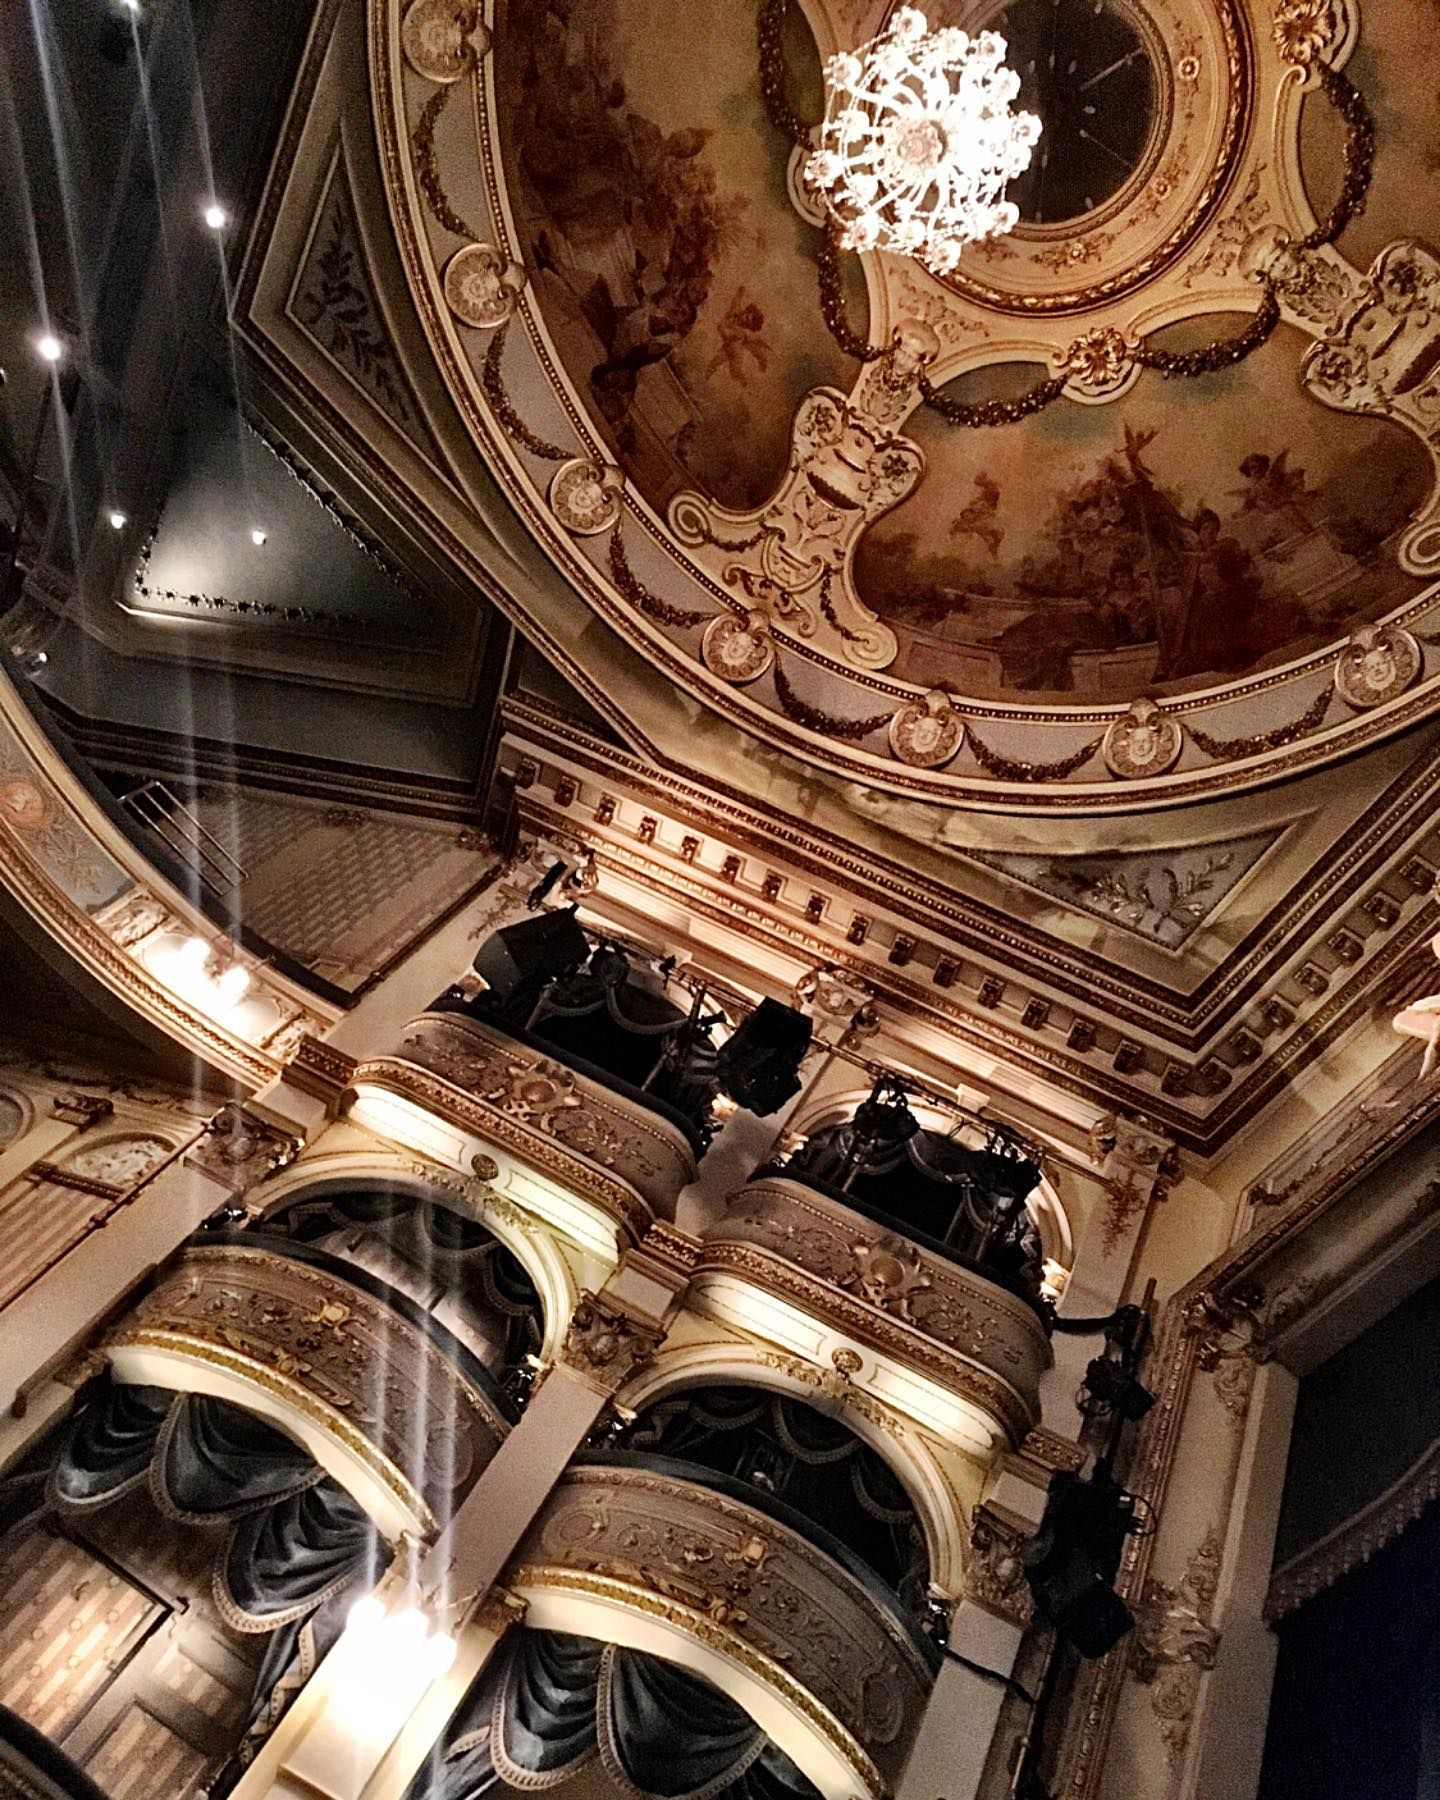 The gorgeous interior of Wyndham's Theatre, Saint Martin's Court, in the West End of London 🇬🇧 there